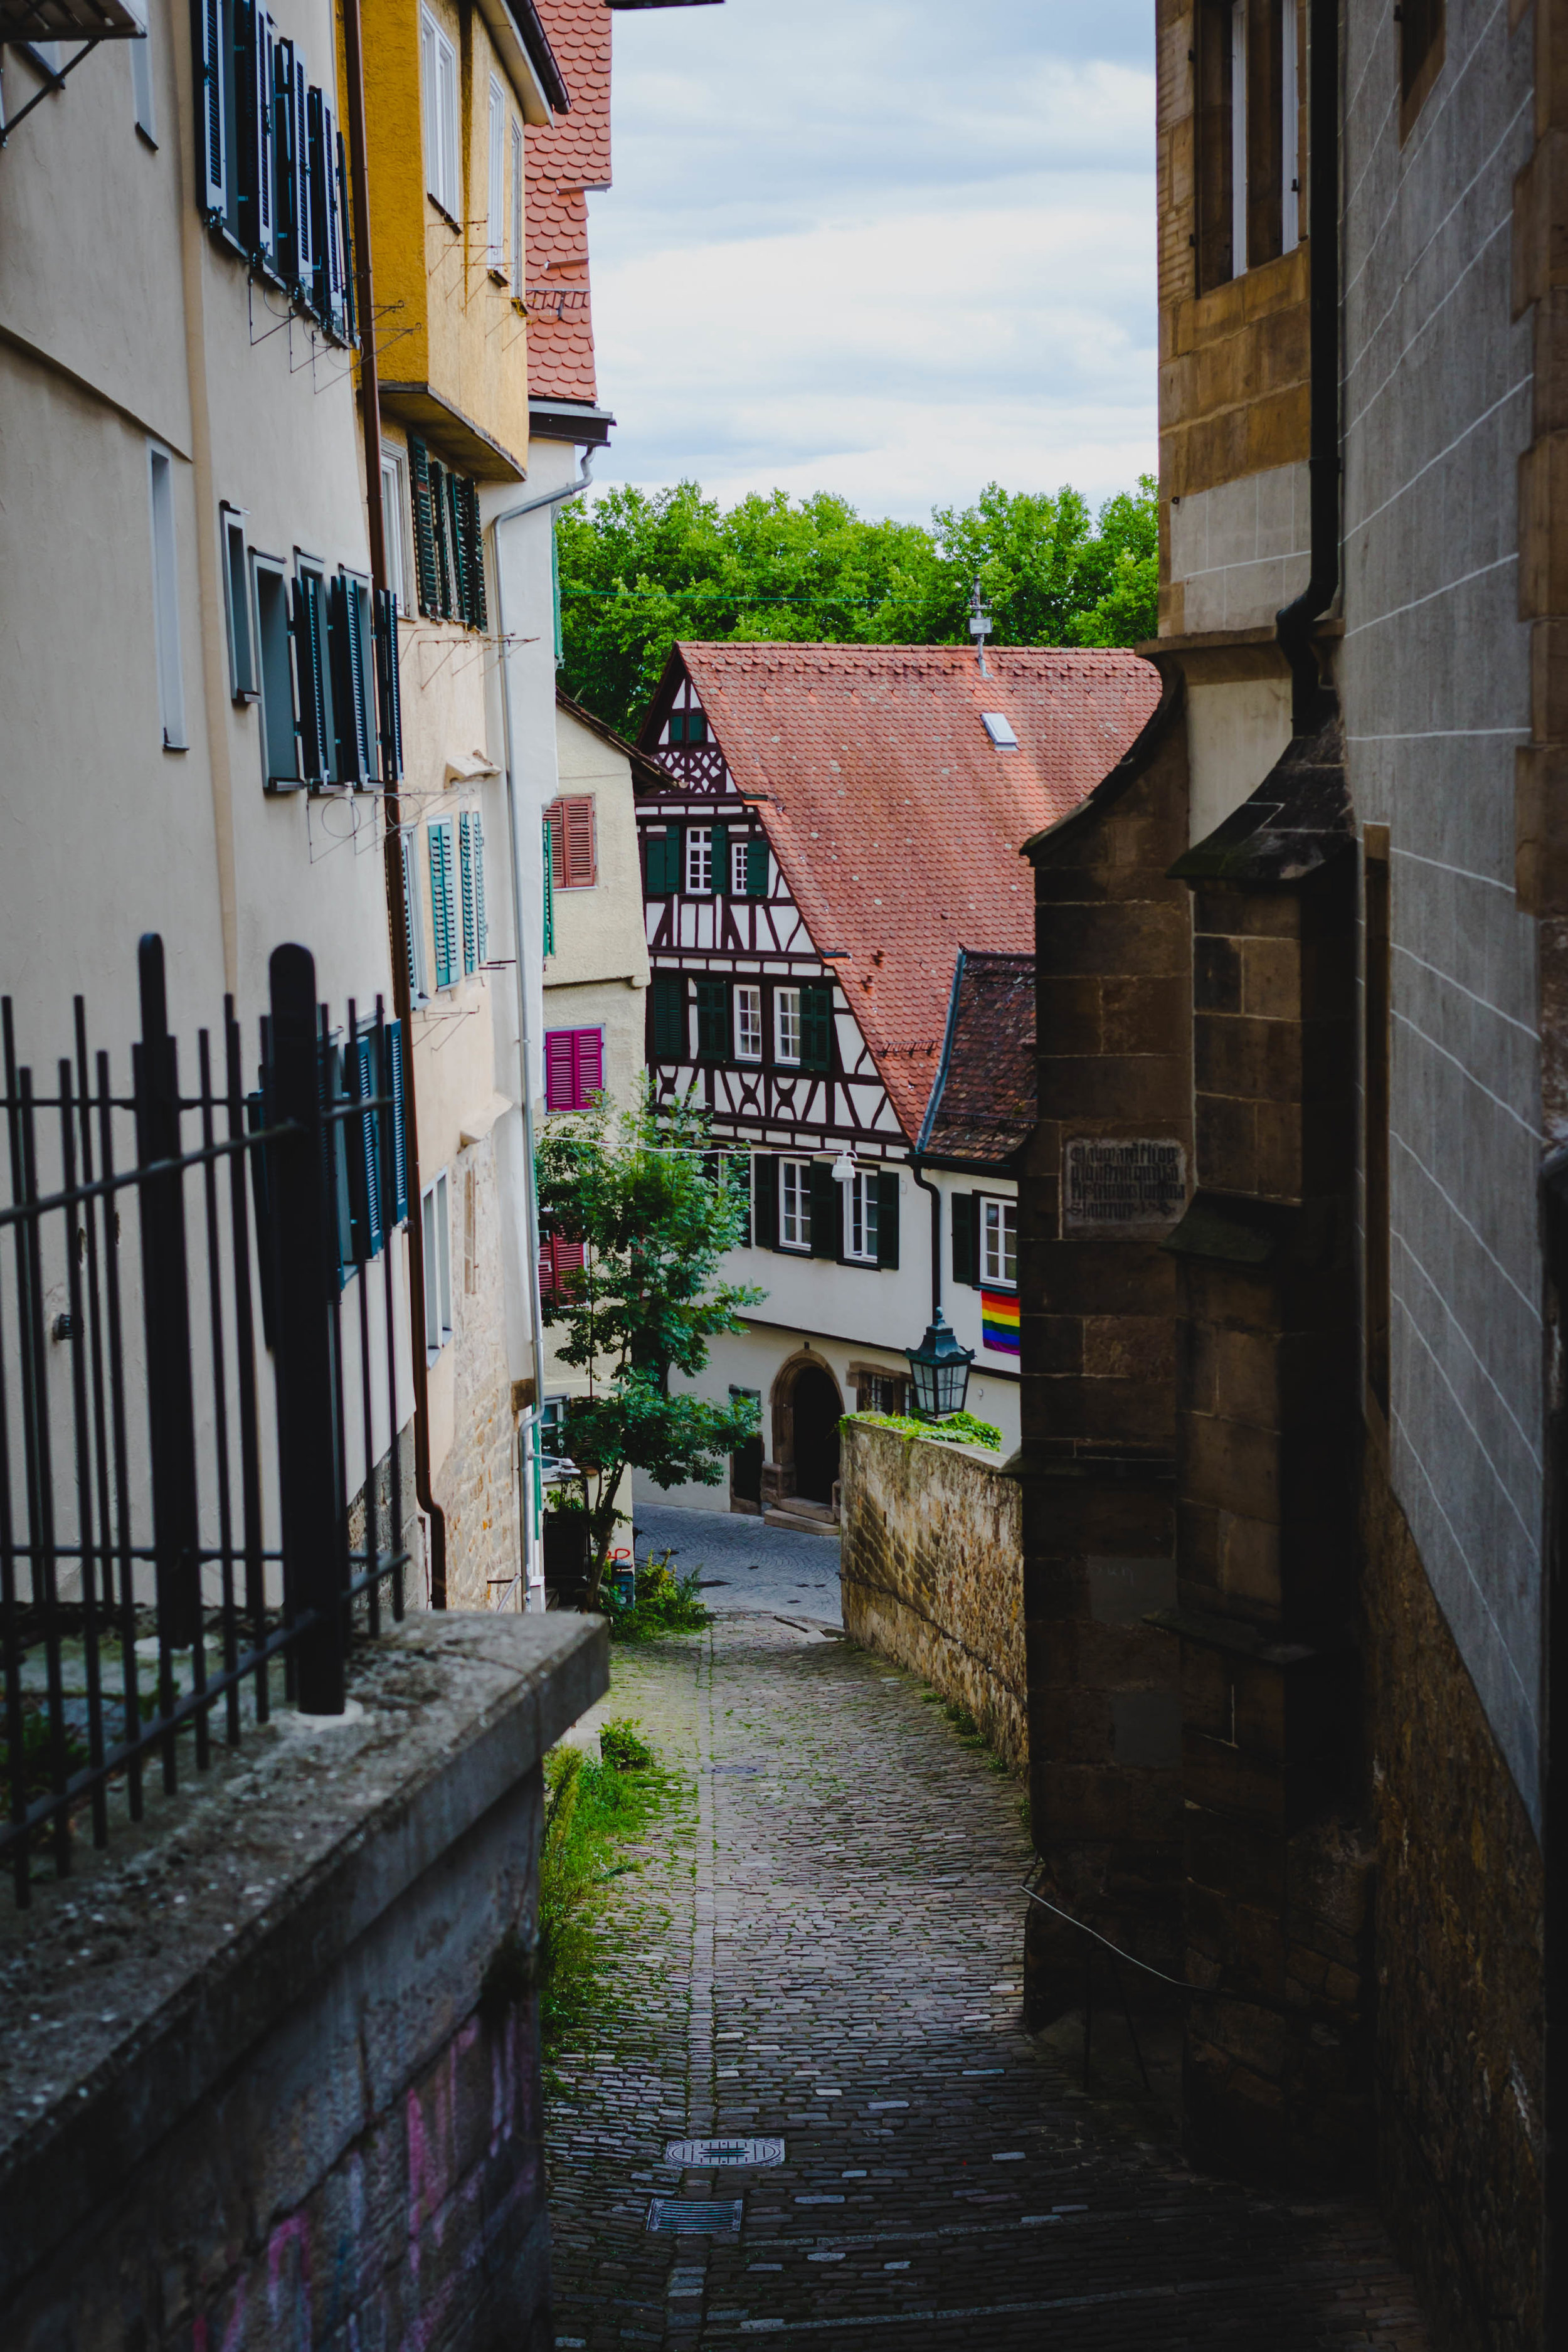 4. The Altstadt - Wonder around the winding, narrow, cobblestone streets of the Old Town and marvel are all the beautifully painted half-timber homes.